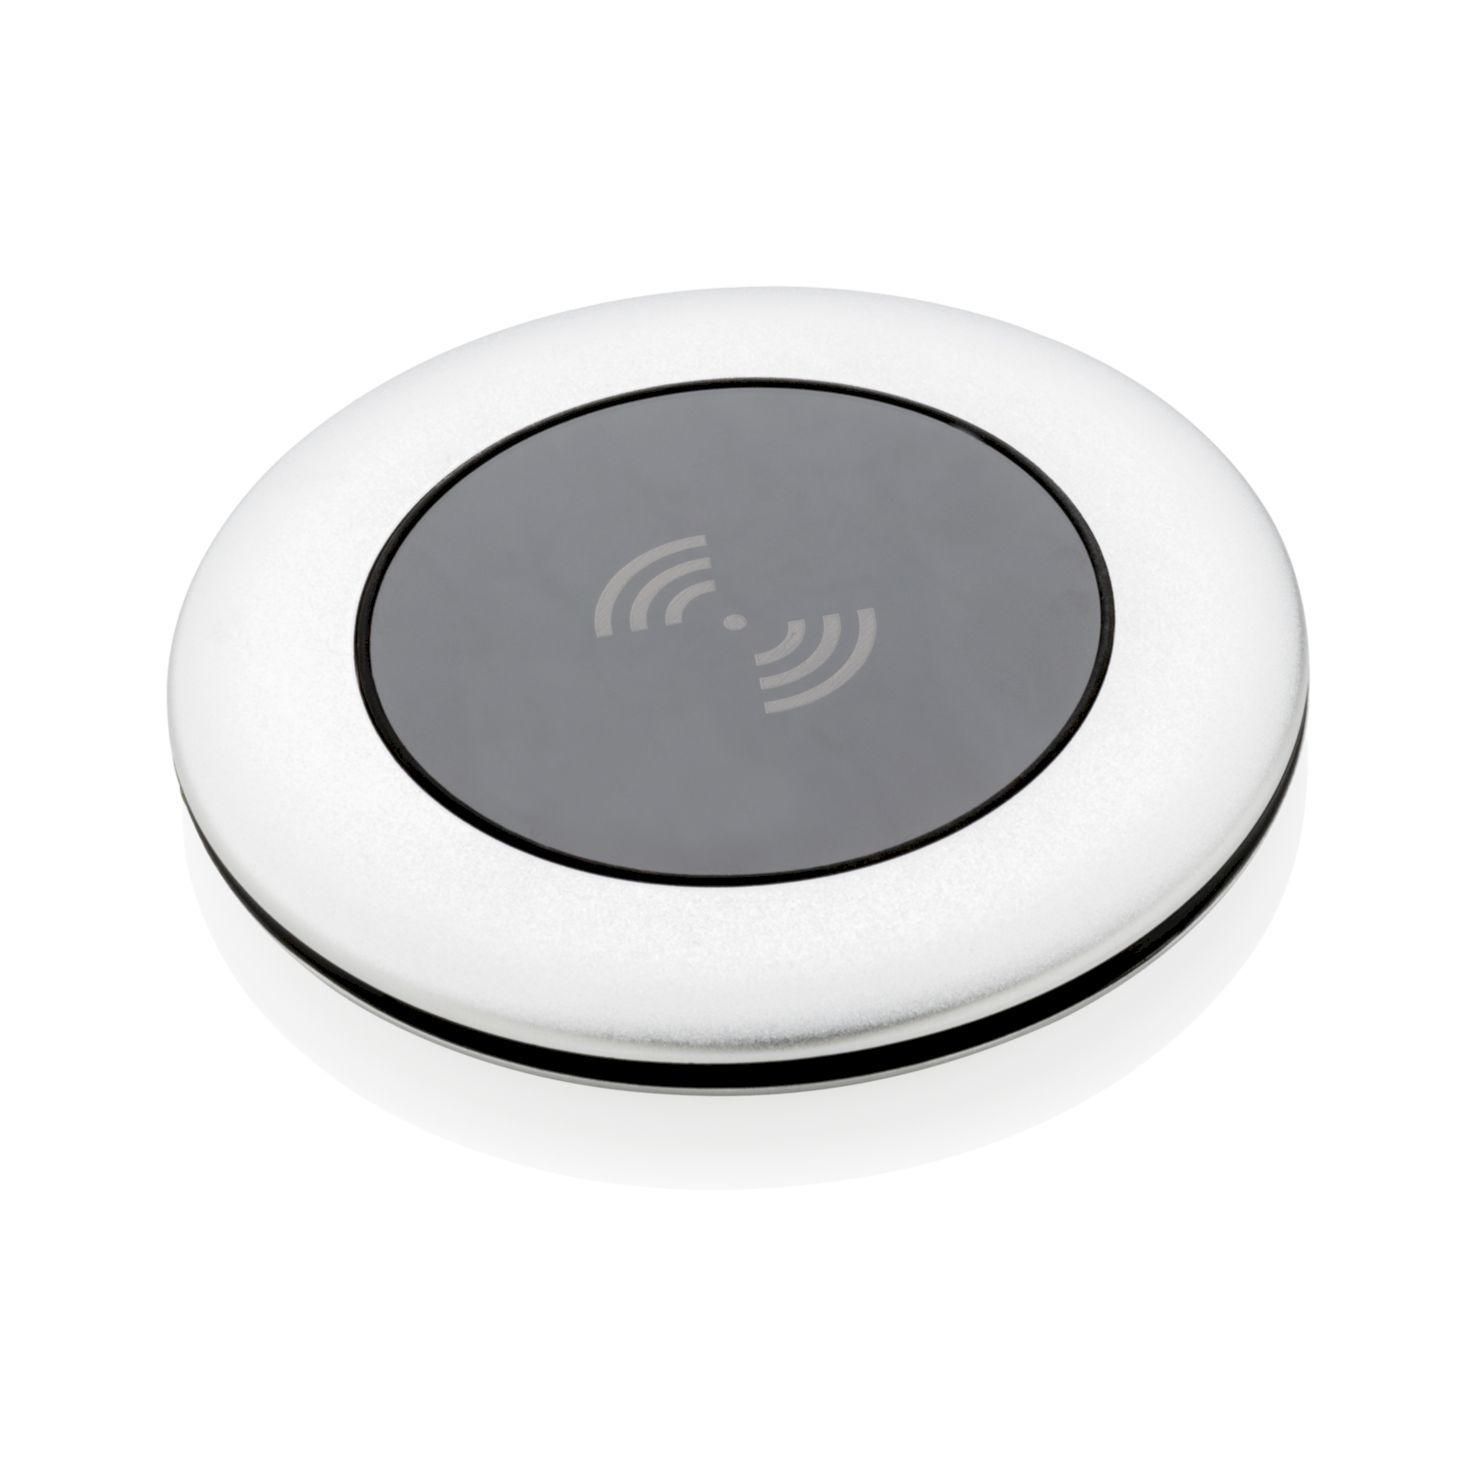 Zilvere Wireless charger | Aluminium